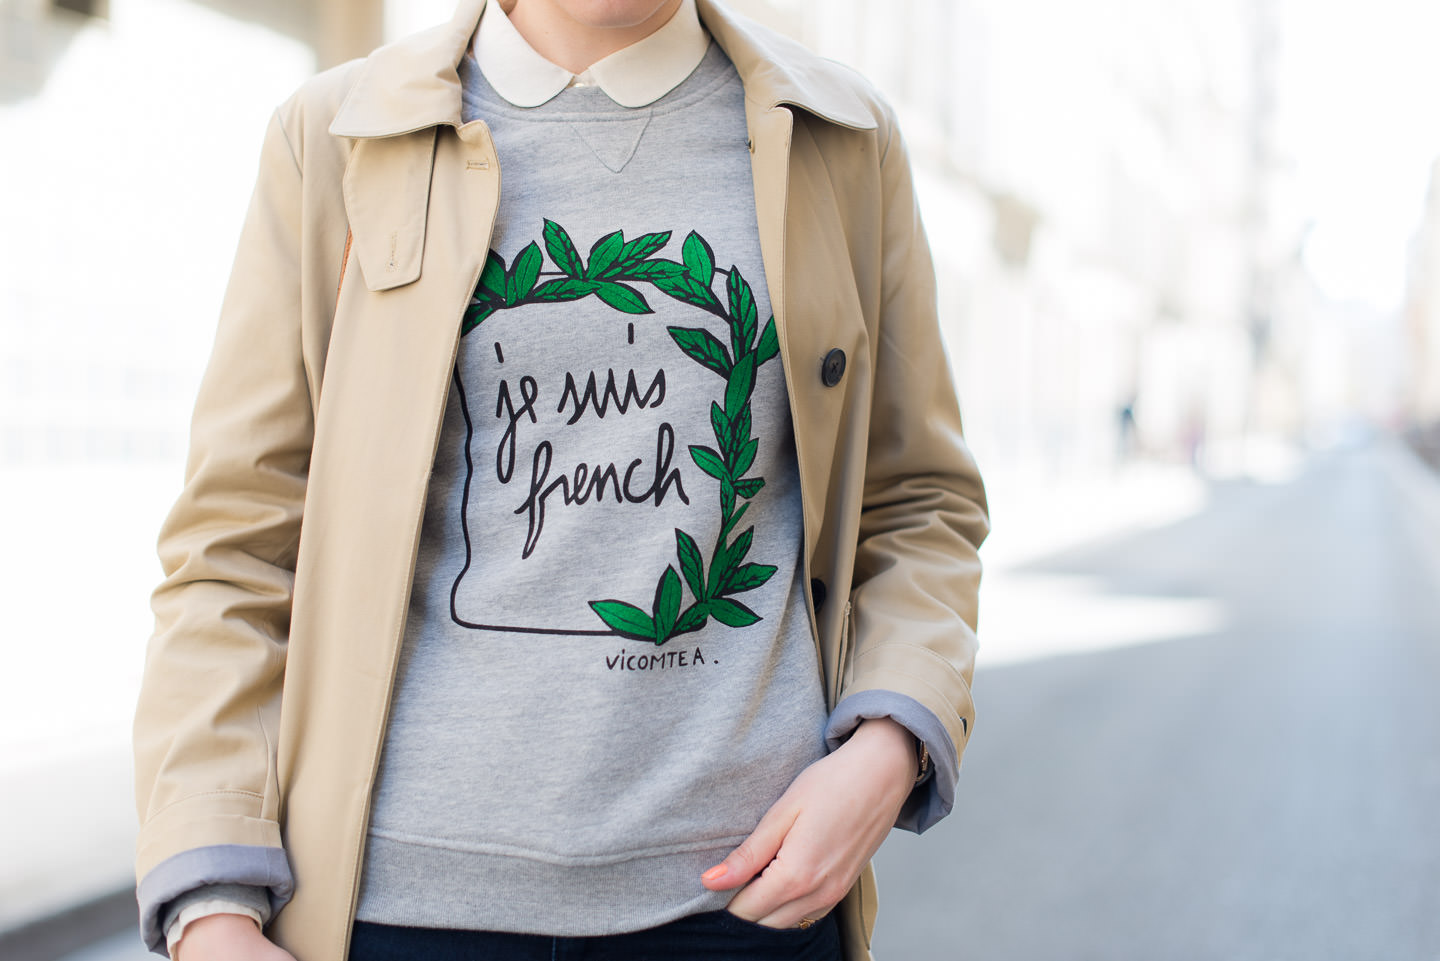 Blog-Mode-And-The-City-looks-sweat-vicomte-a-je-suis-french-2